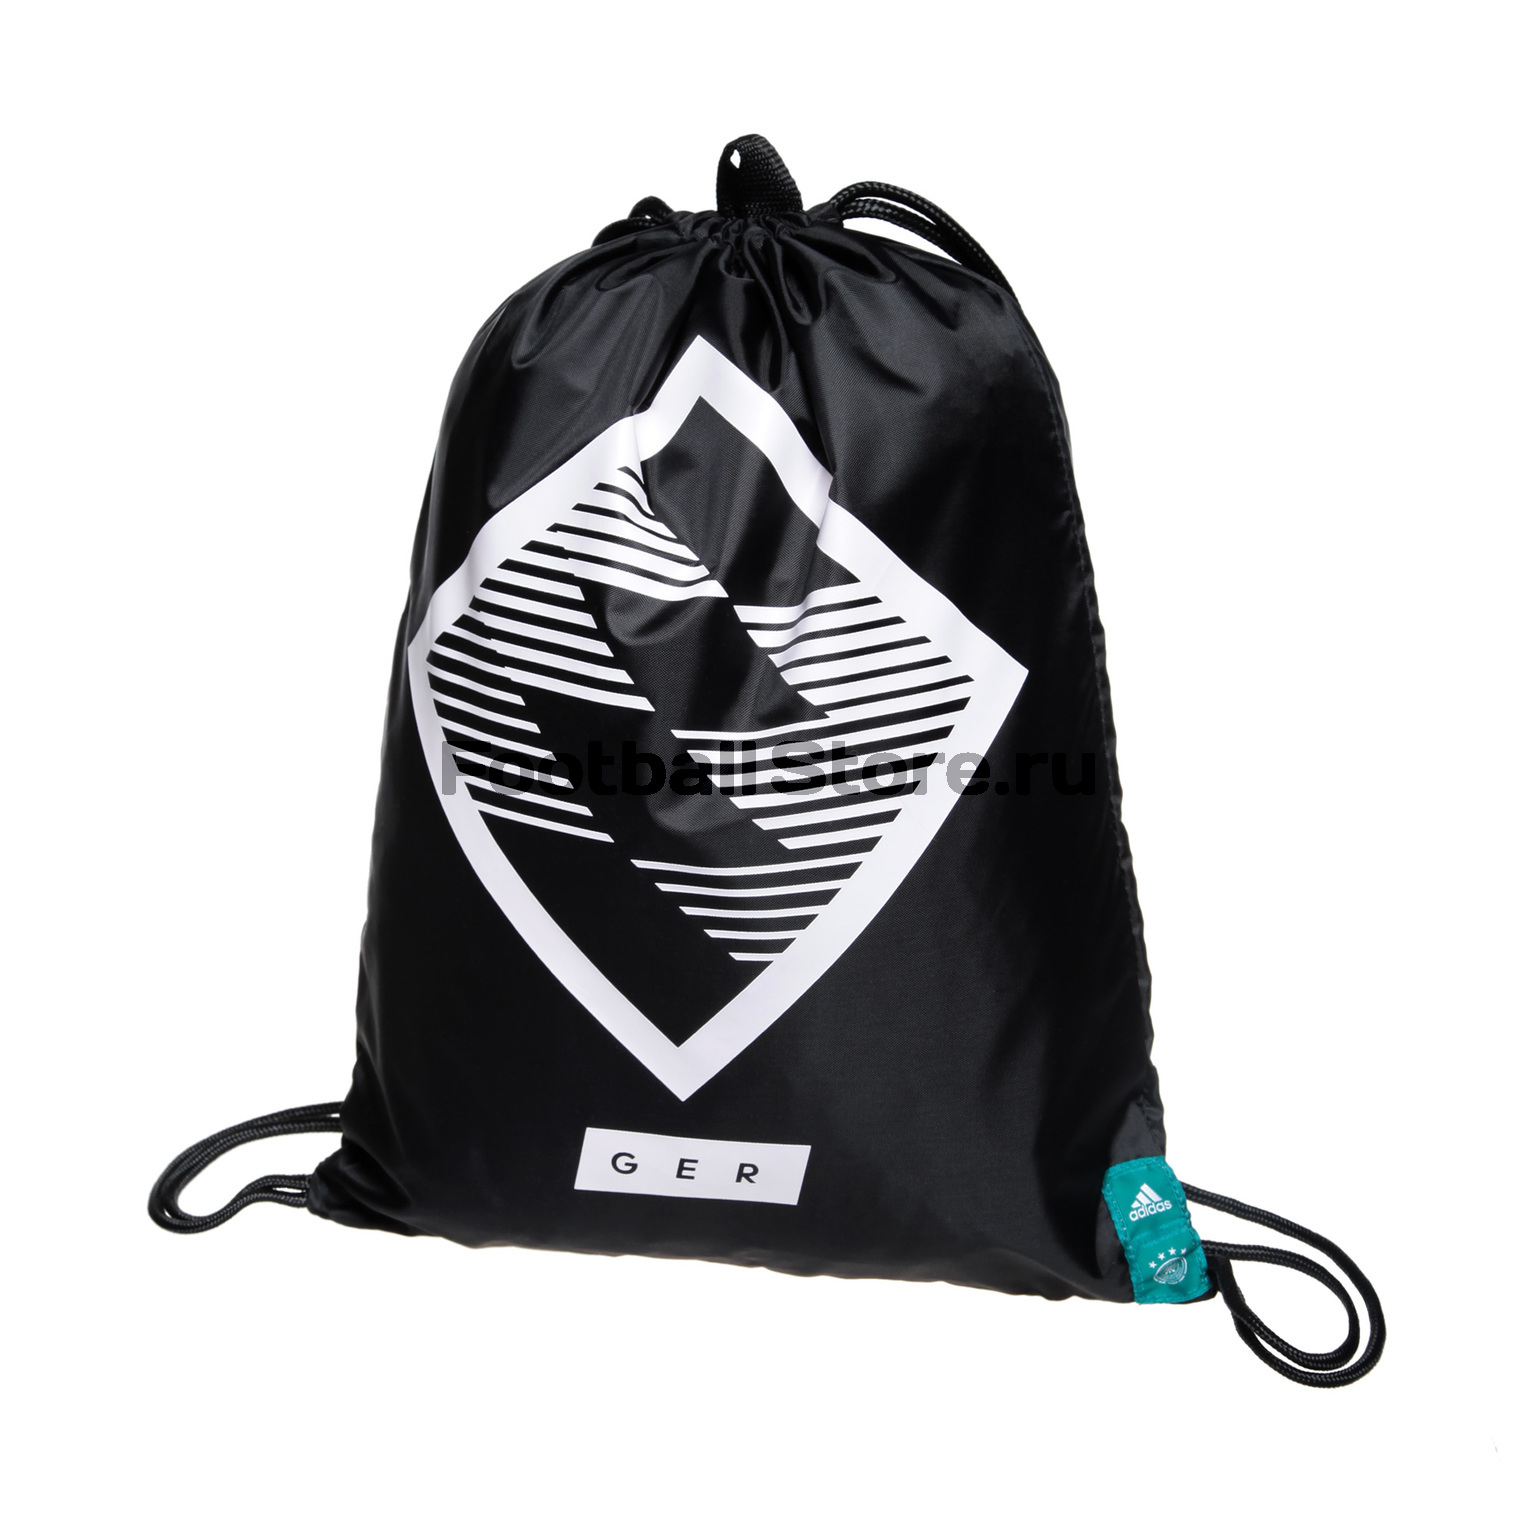 Сумка для обуви Adidas Germany Gymbag GR CW1611 рюкзак adidas germany backpack cf4941